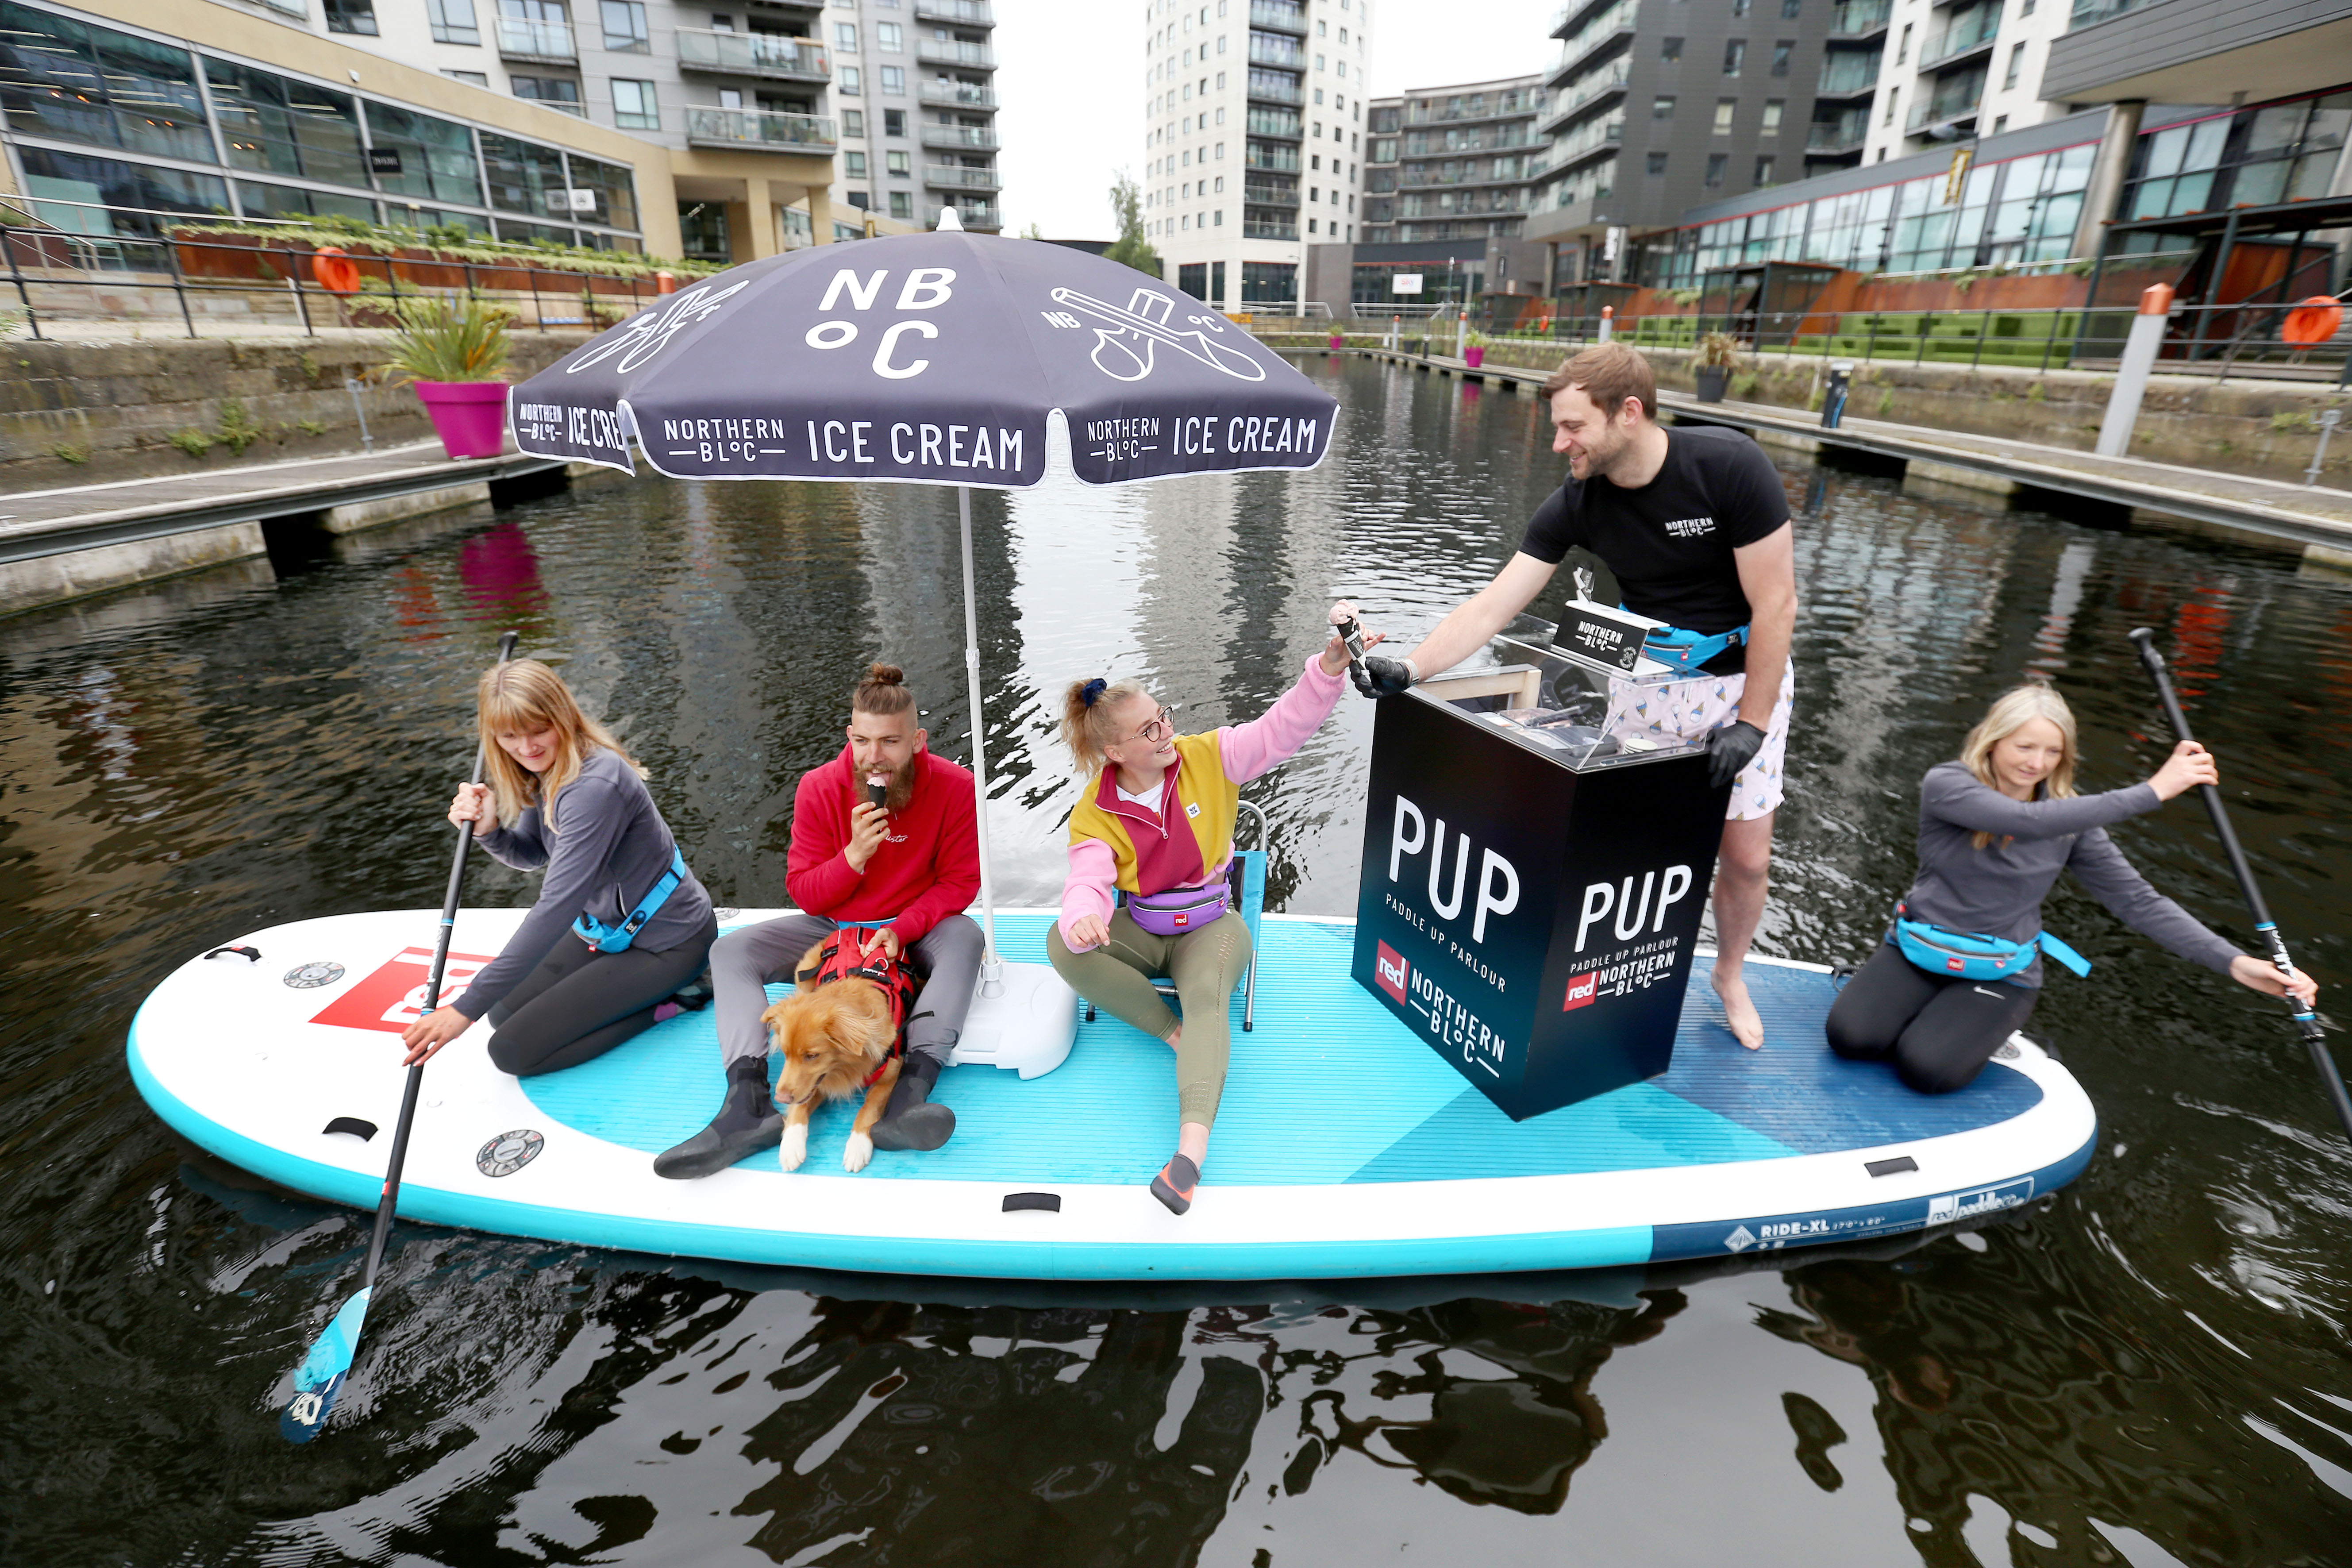 Guz_Launch_Of_Worlds_First_Paddleboat_Ice_Cream_Parlour-015